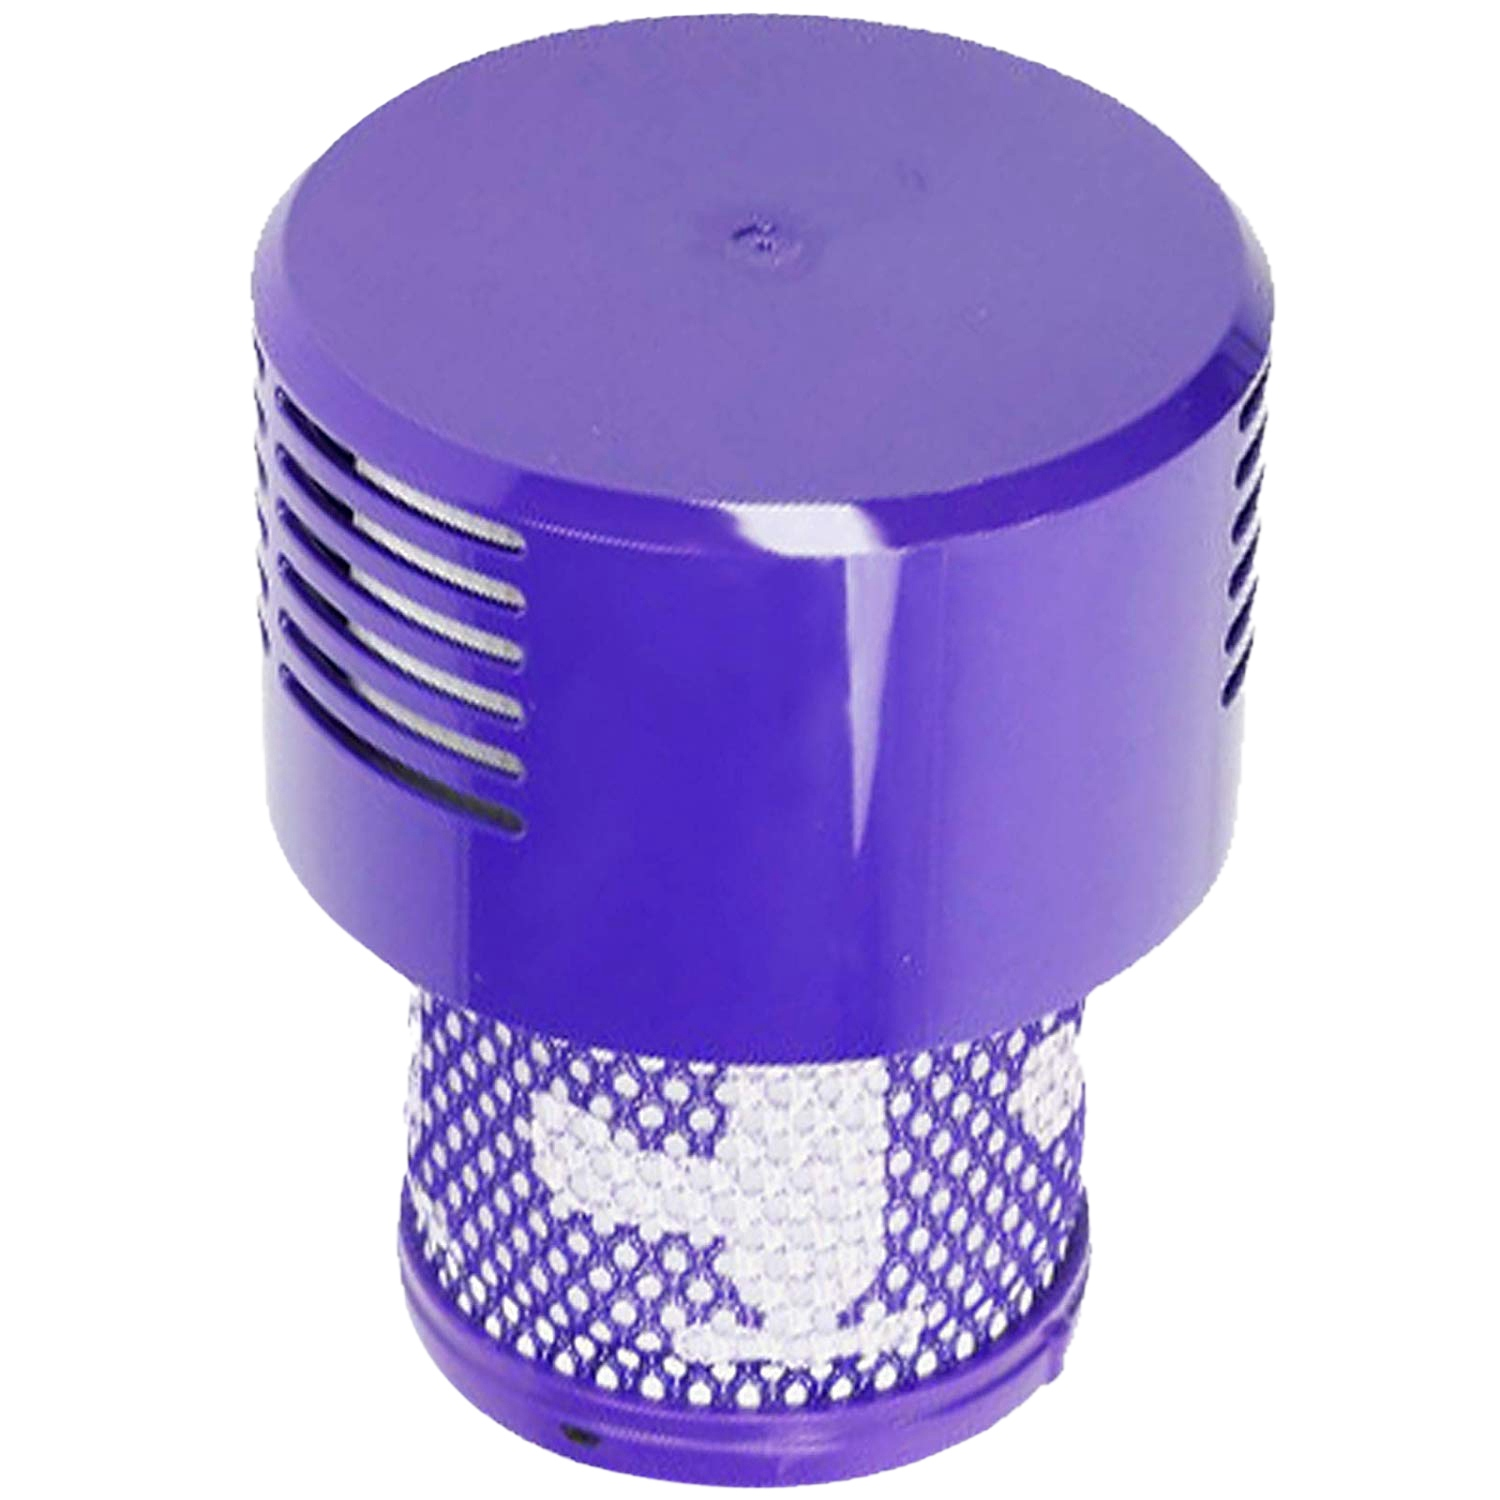 New Hot Washable Filter Unit For Dyson V10 Sv12 Cyclone Absolute Total Clean Vacuum Cleaner (Pack Of 5)